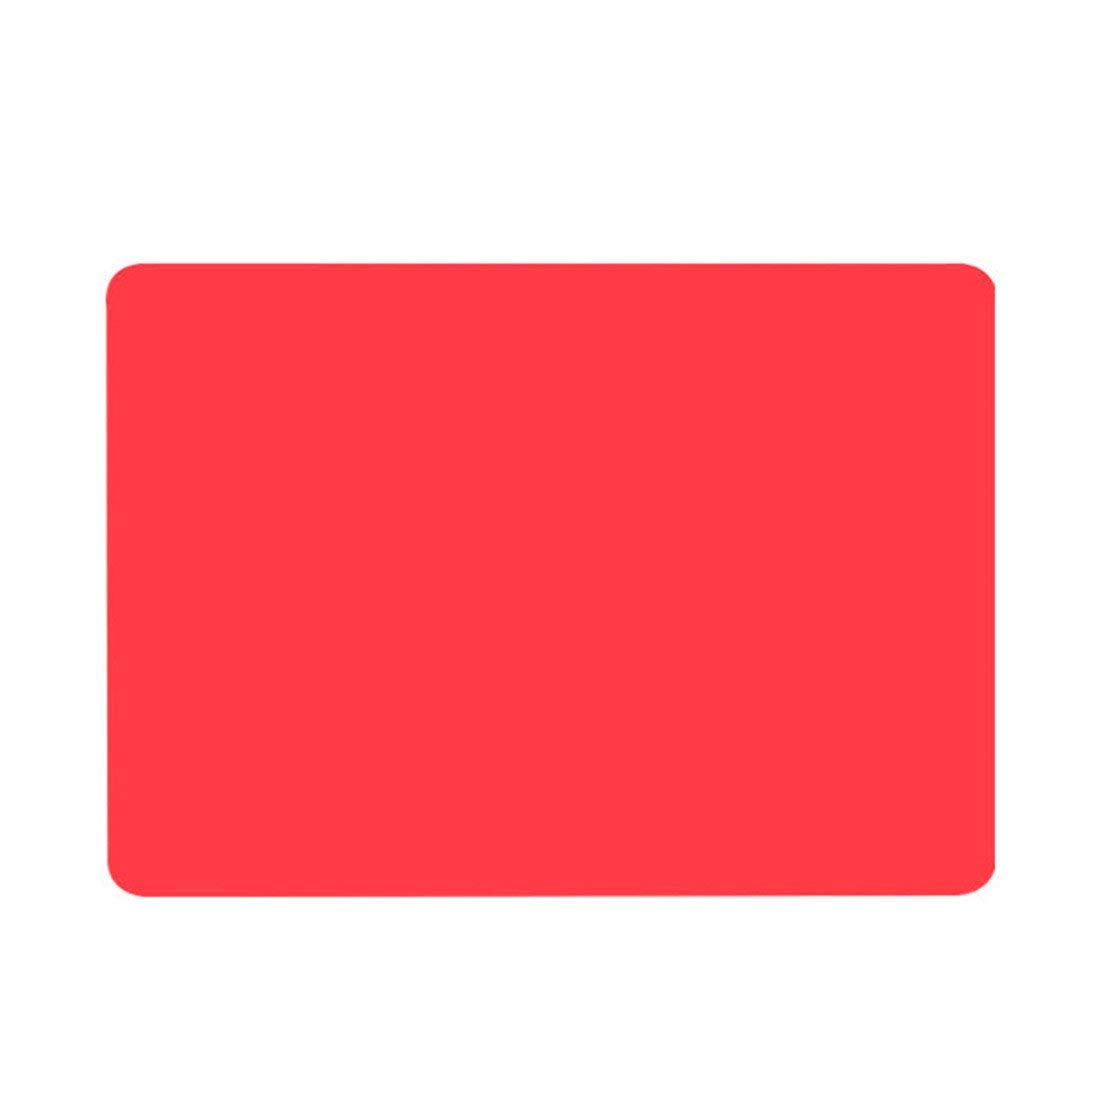 HOBOYER Silicone Table Mats Soft Non Slip Waterproof Heat Resistant Liner Oven Pad for Kids Foods Mats Free FDA[15.7411.81inch] (Red)